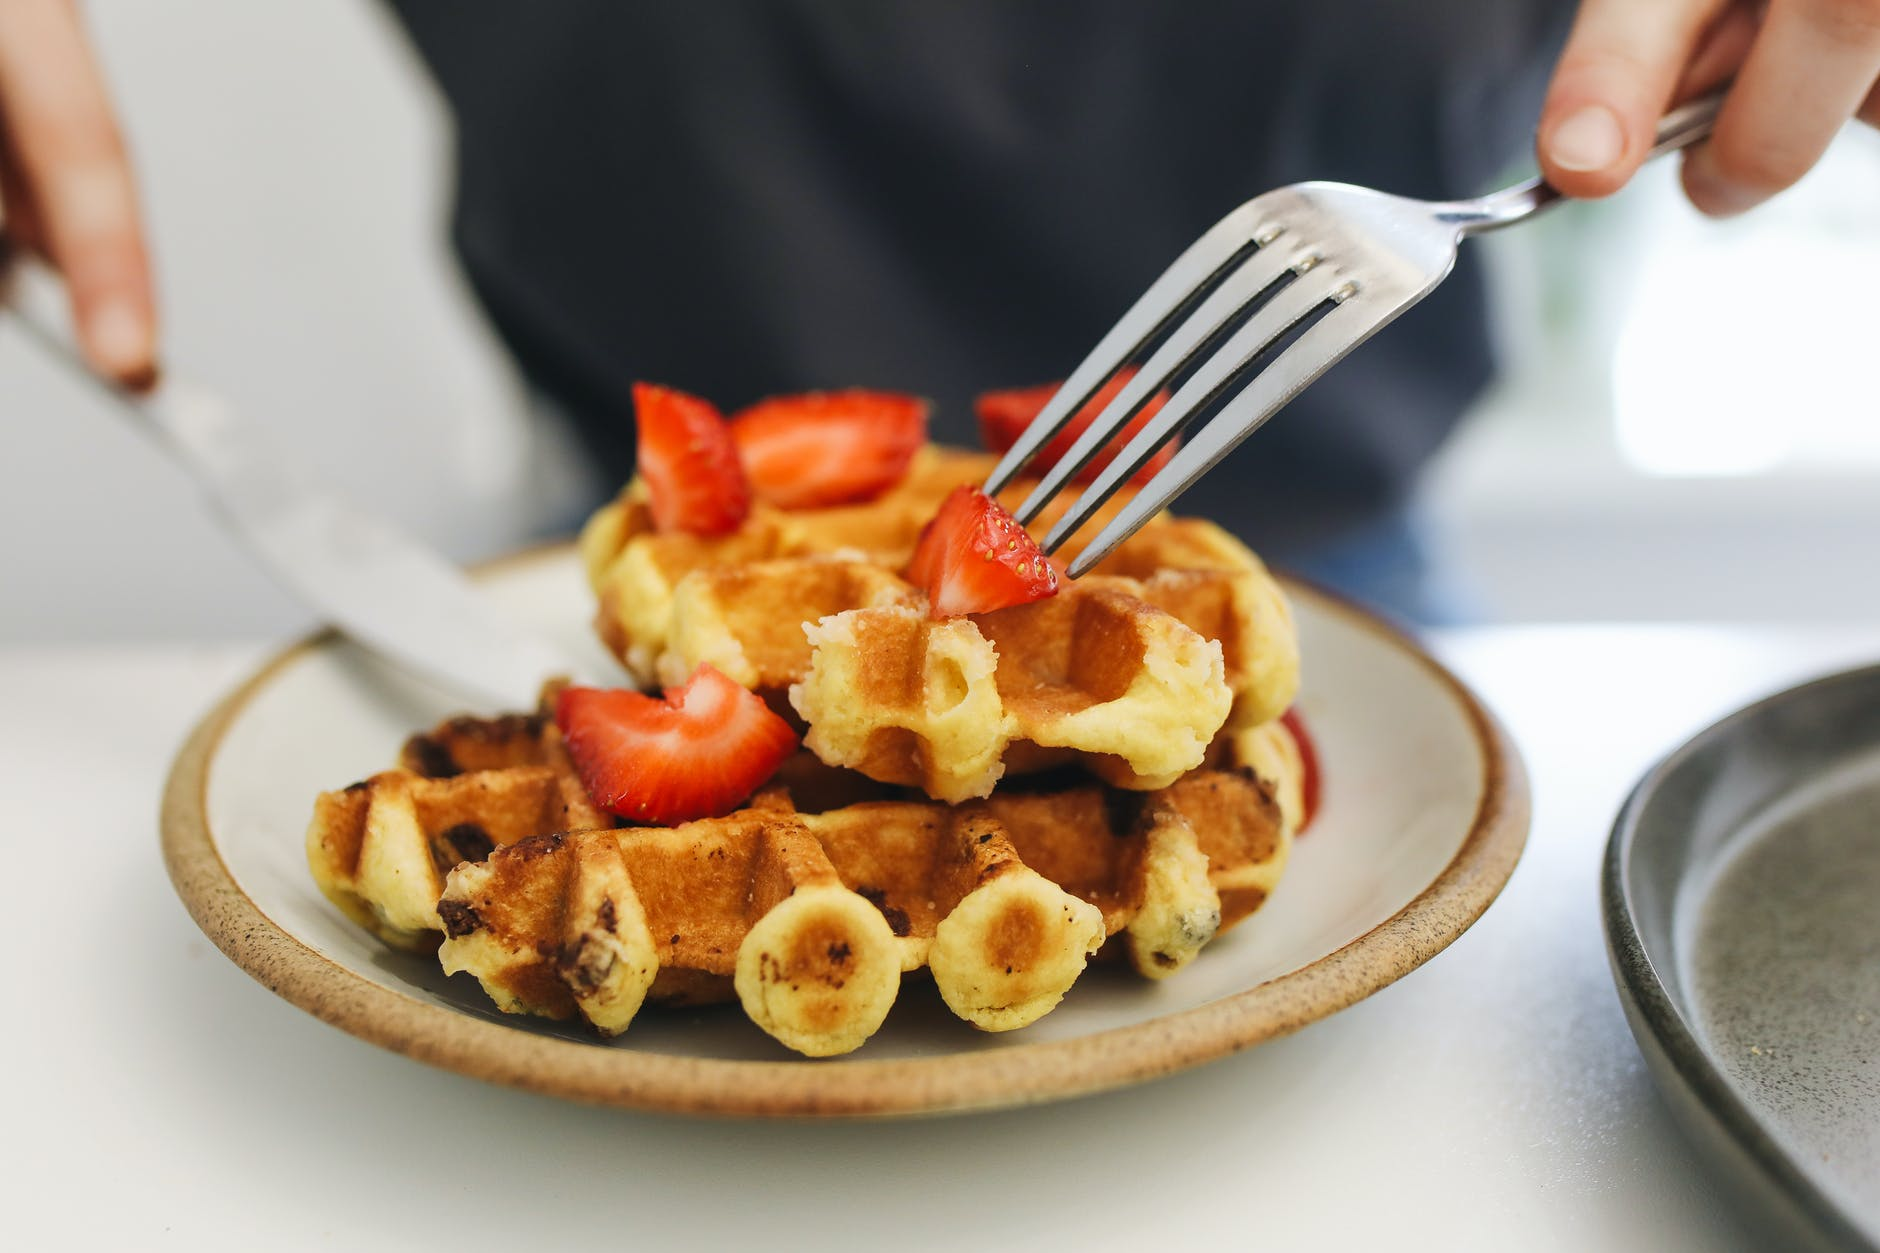 Do You Want to Know the Secret to Making Waffles Nutritious?